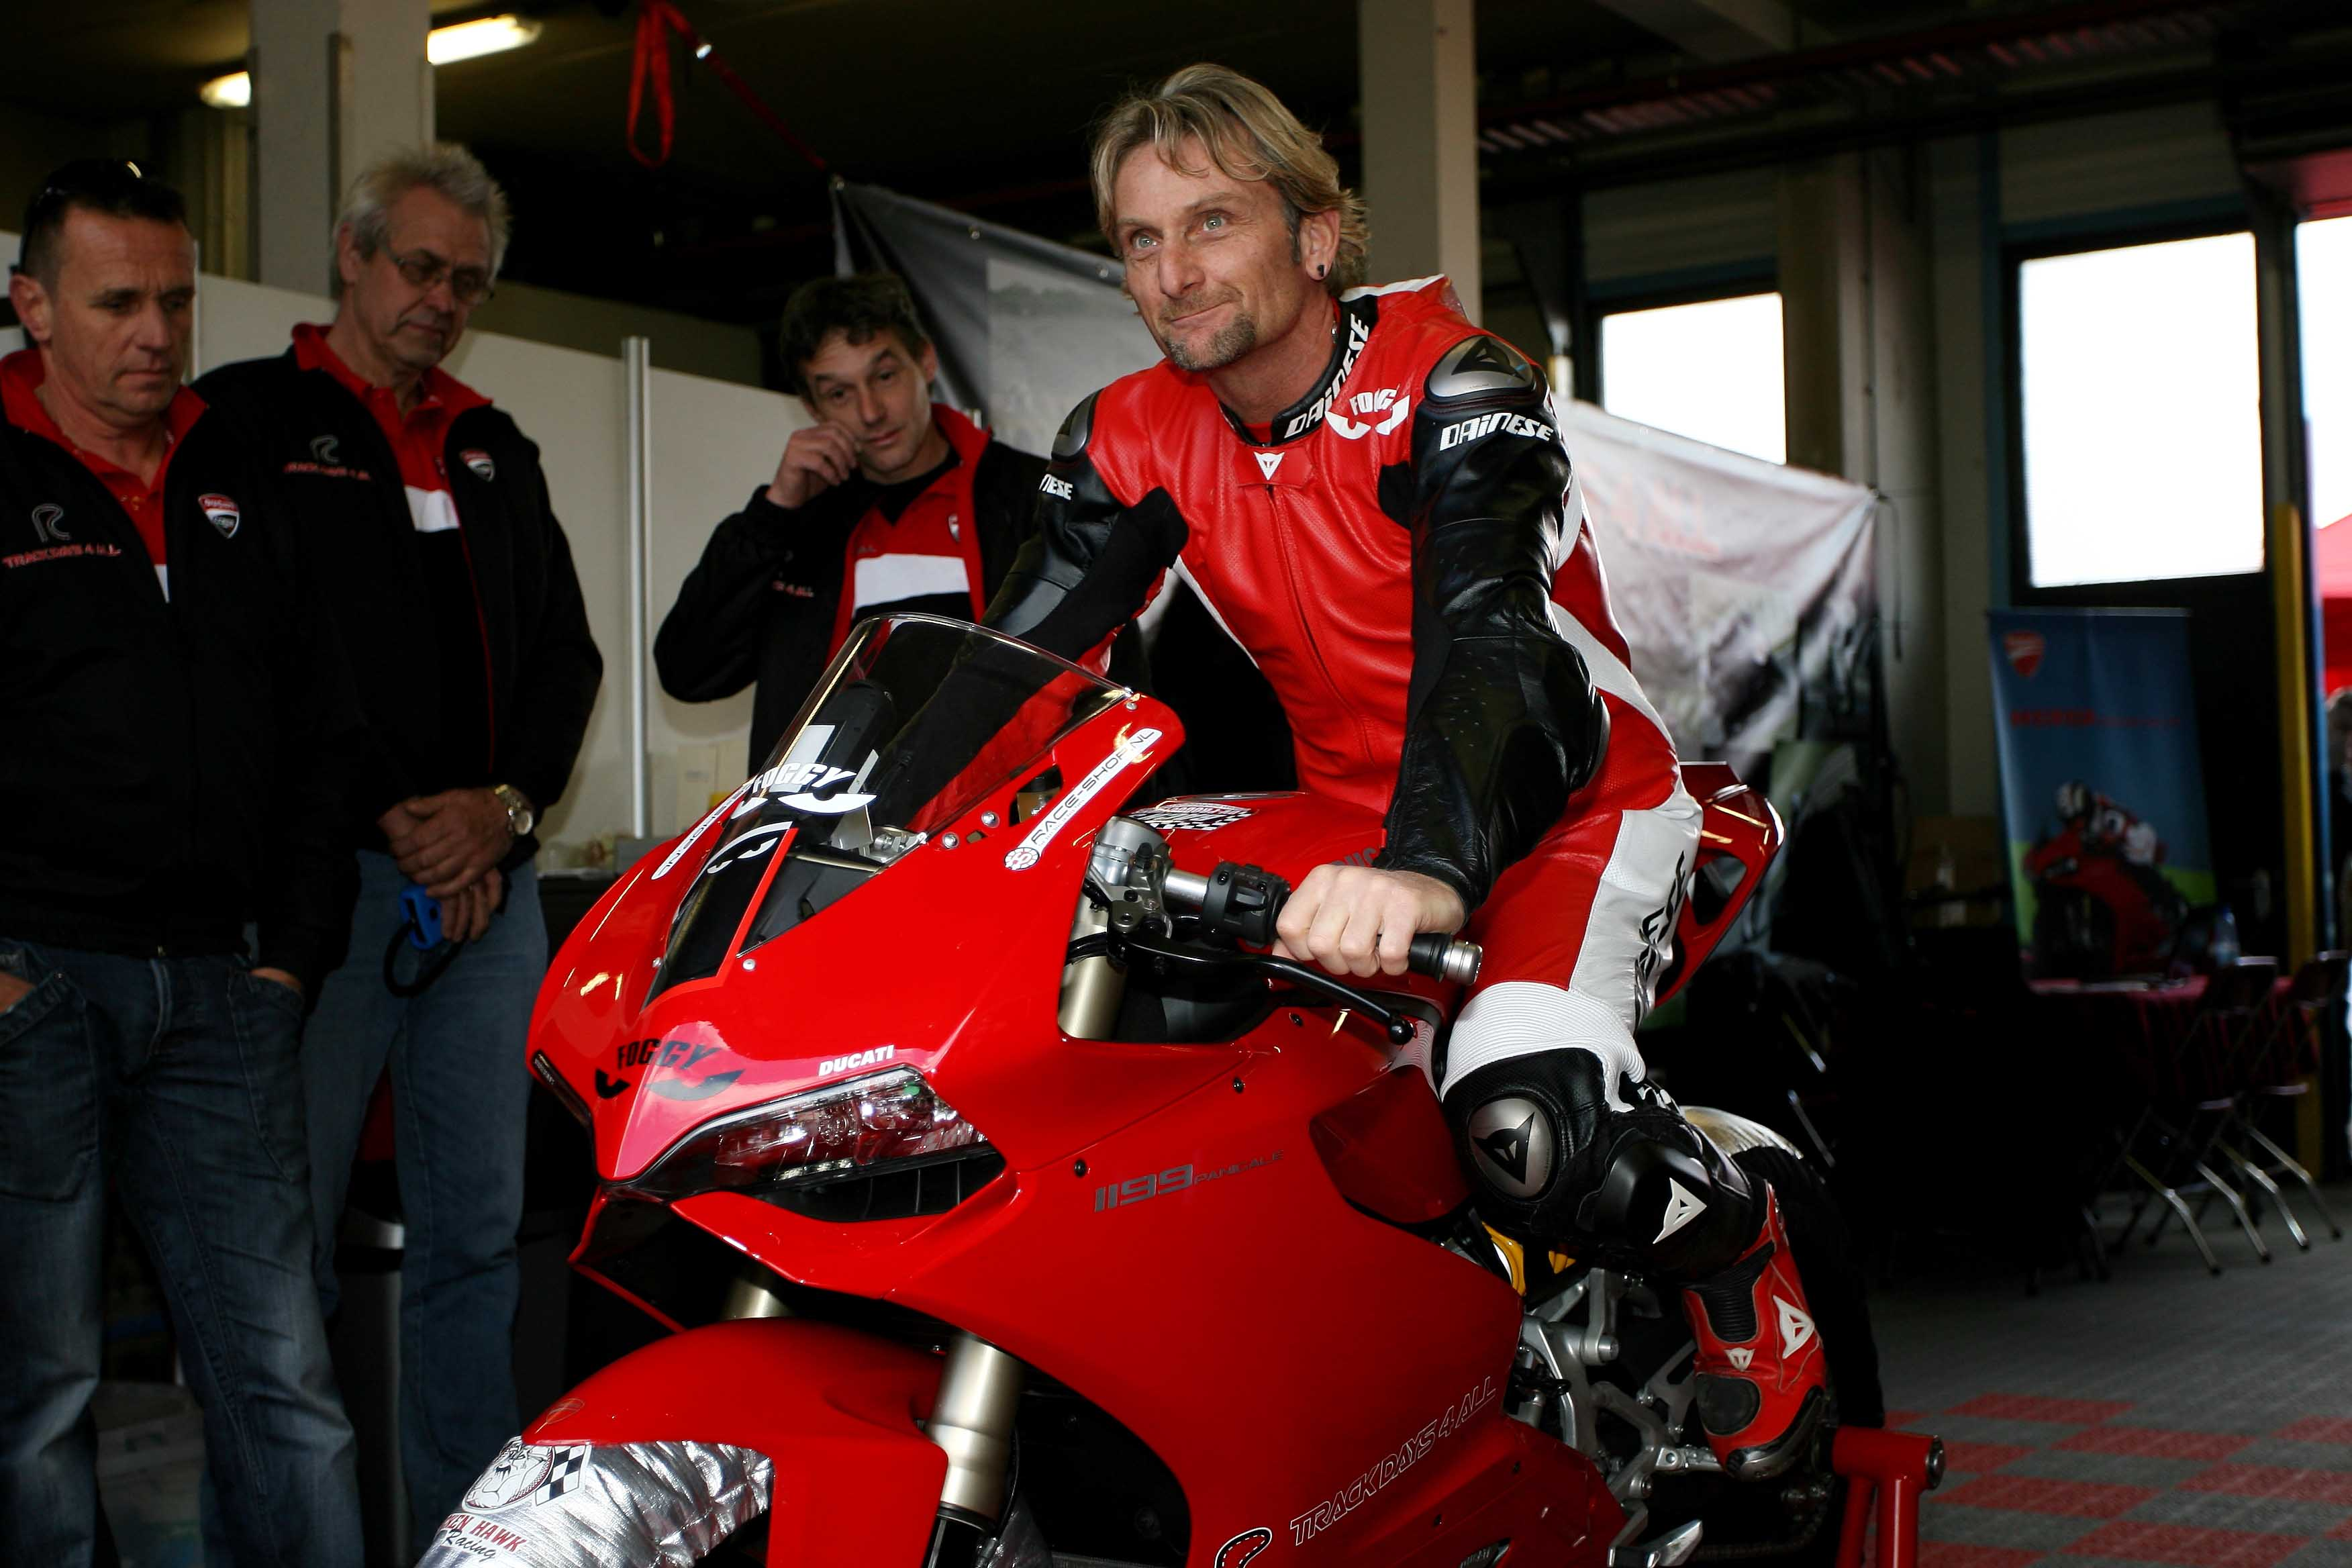 carlfogarty_assen2012_0016_LOW_RES